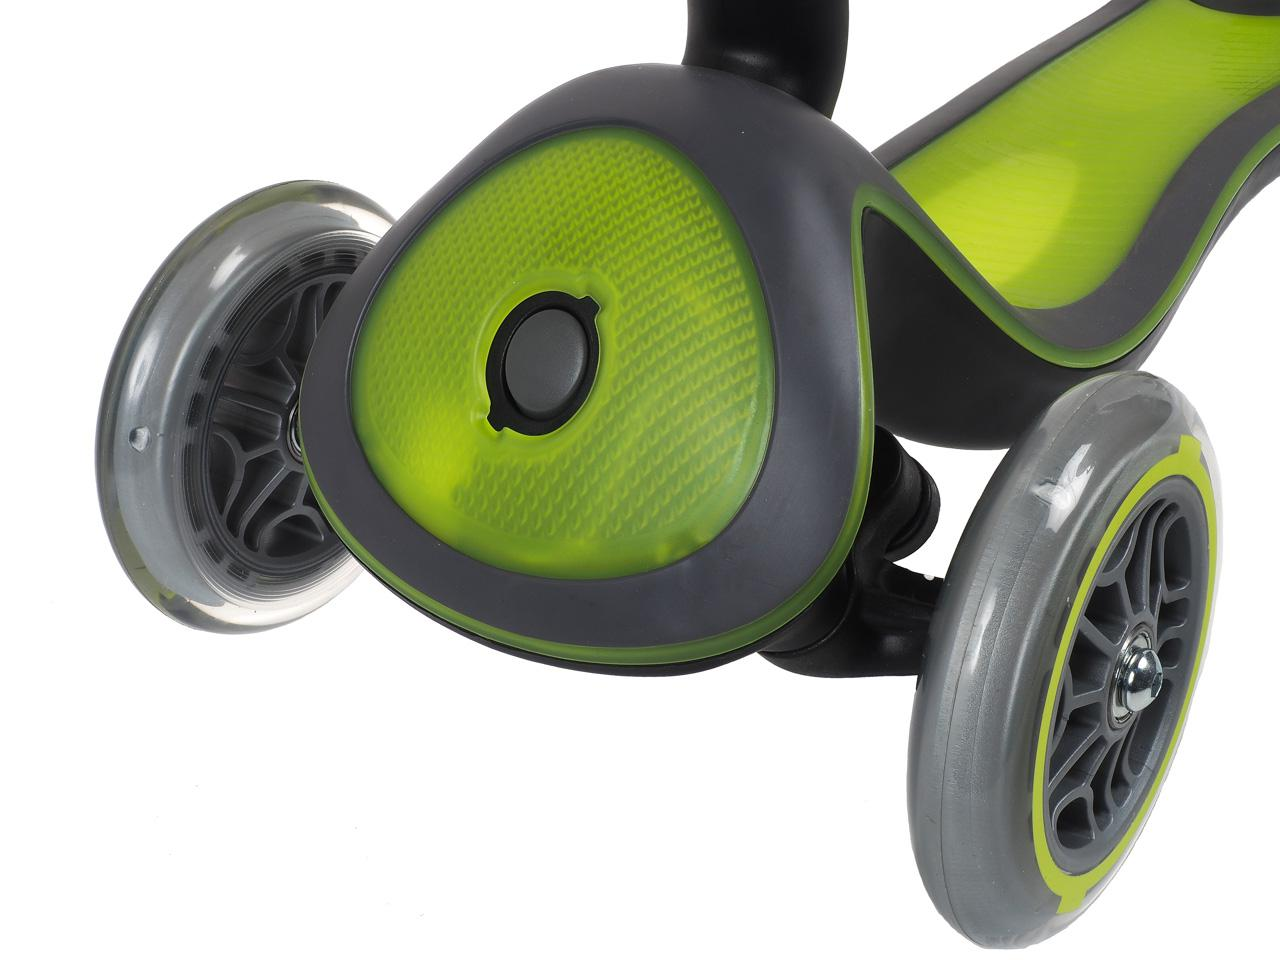 Scooter-Leisure-Glober-Myfree-Elite-Lime-Green-70959-New thumbnail 4